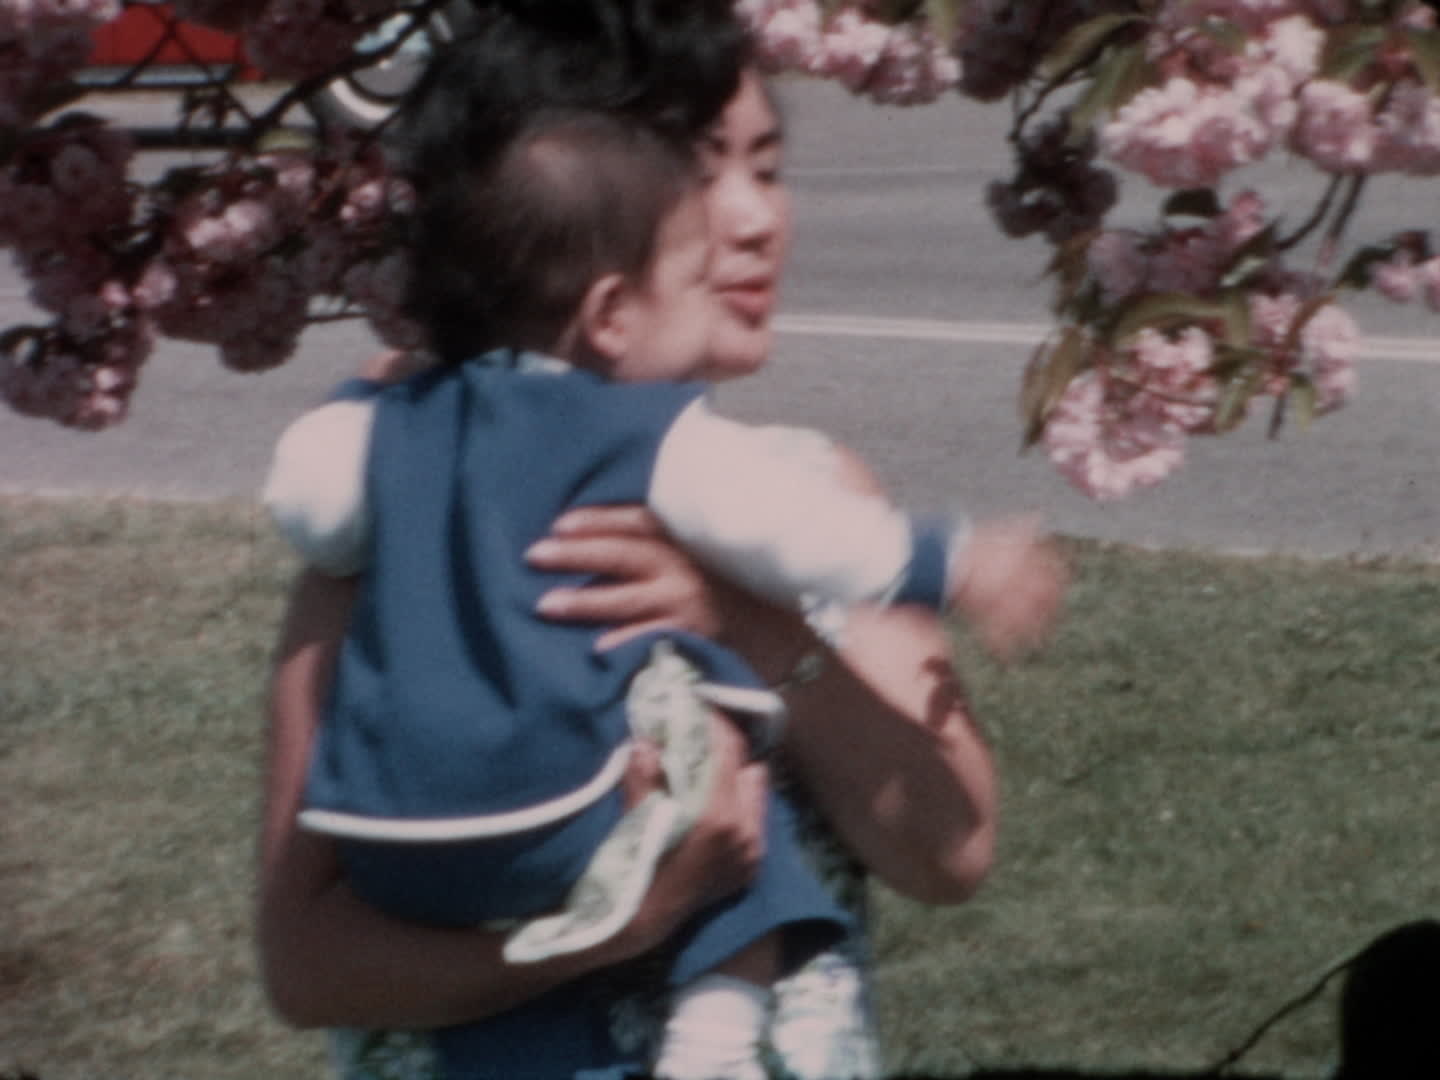 Watada family videos : baby outside cherry blossoms